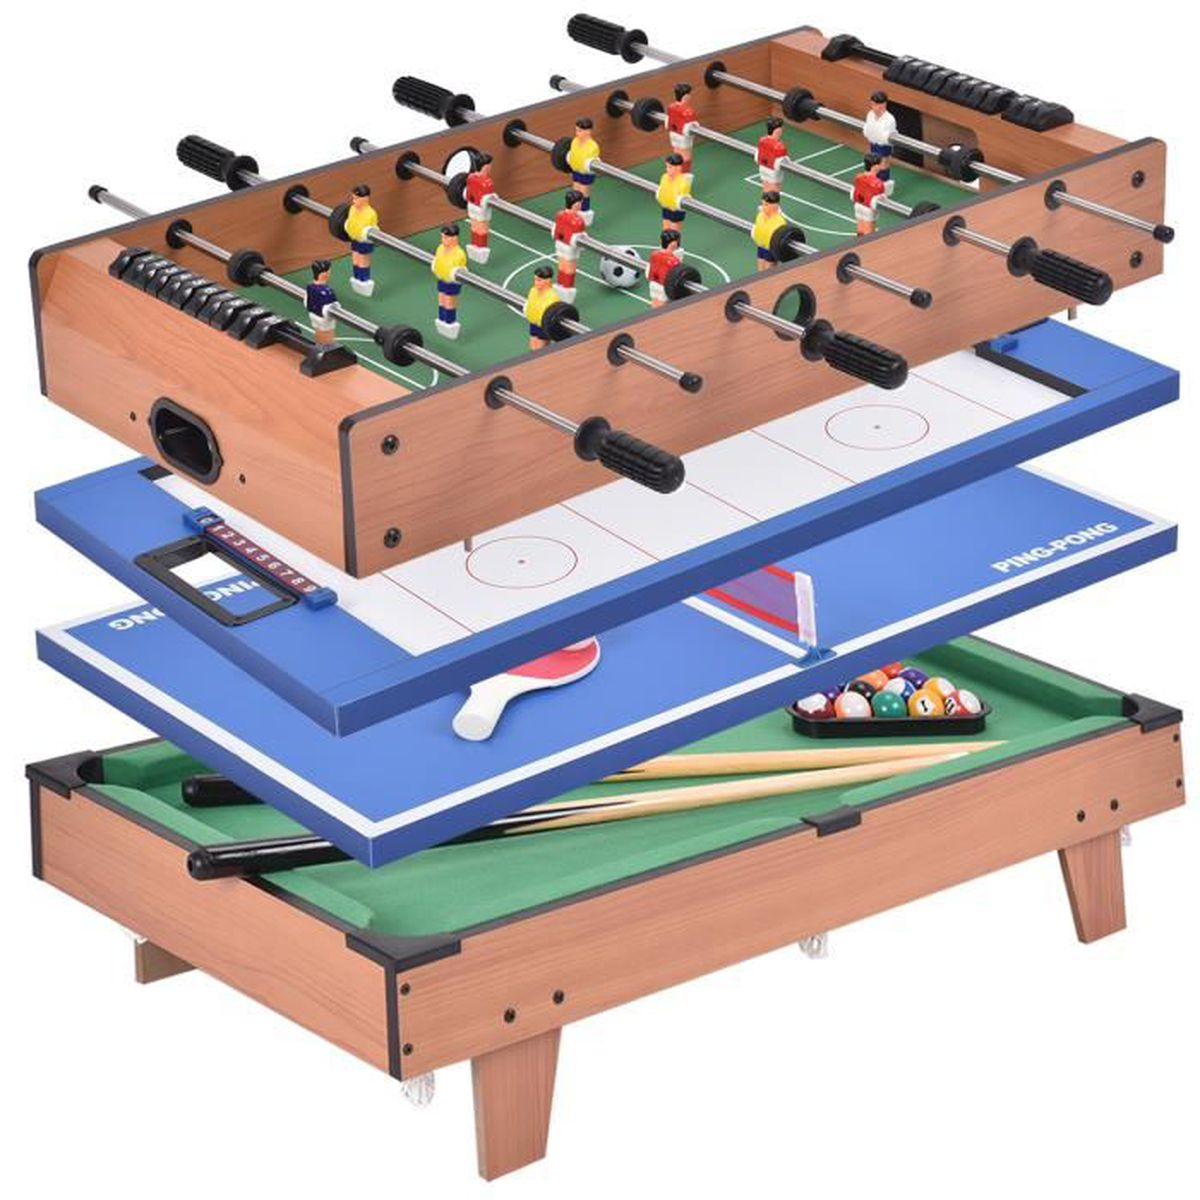 Table multi jeux 4 en 1 baby foot tennis de table hockey billard gain de plac - Table multi jeux enfant ...